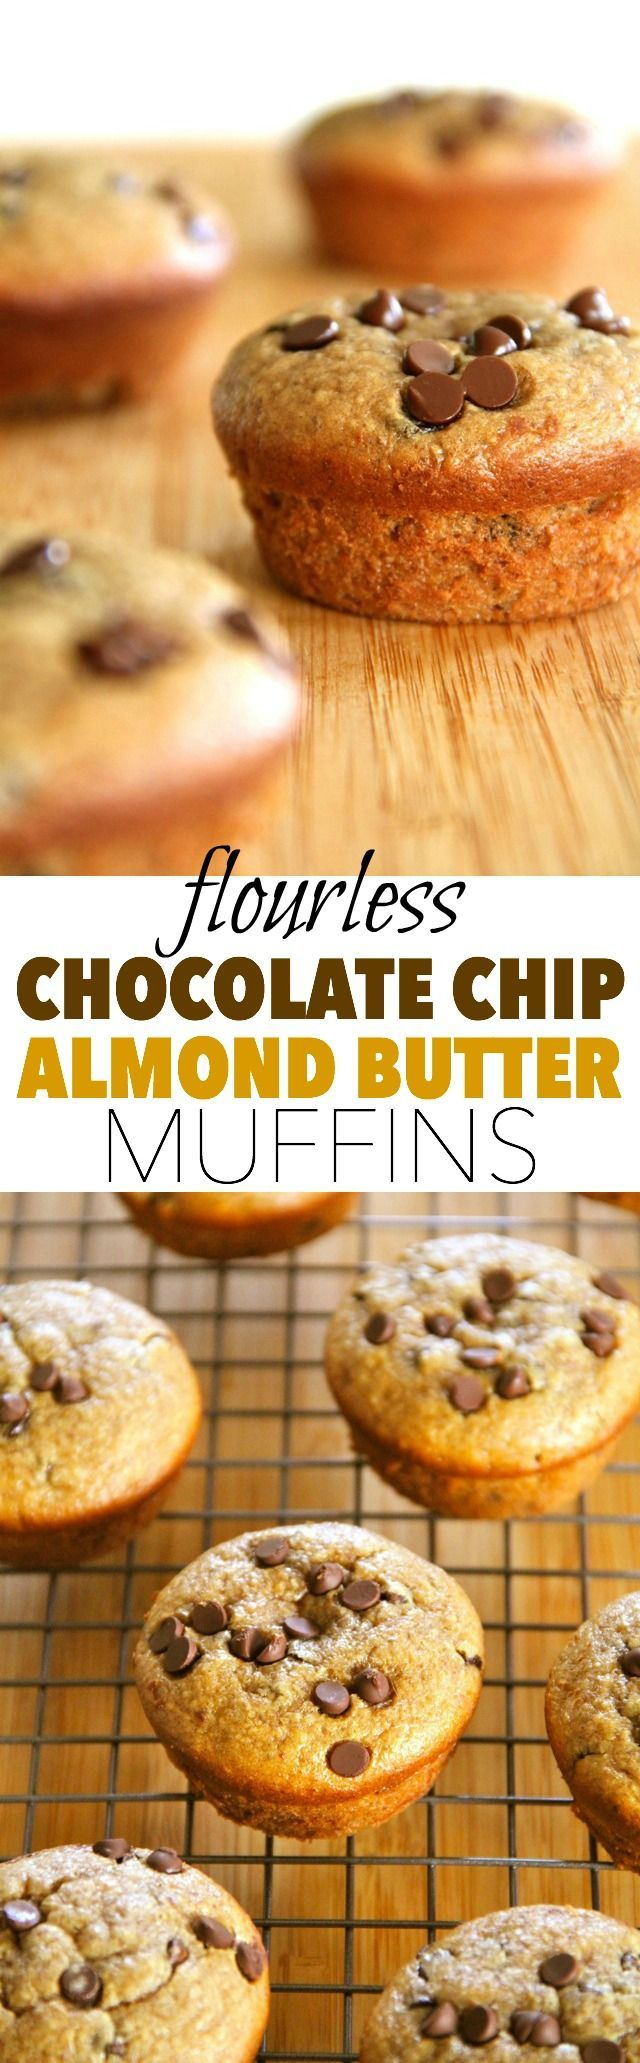 Flourless Chocolate Chip Almond Butter Muffins -- gluten-free, sugar-free, dairy-free, and oil-free, but so soft and fluffy that you'd never know they were healthy! || runningwithspoons.com #muffins #flourless #healthy